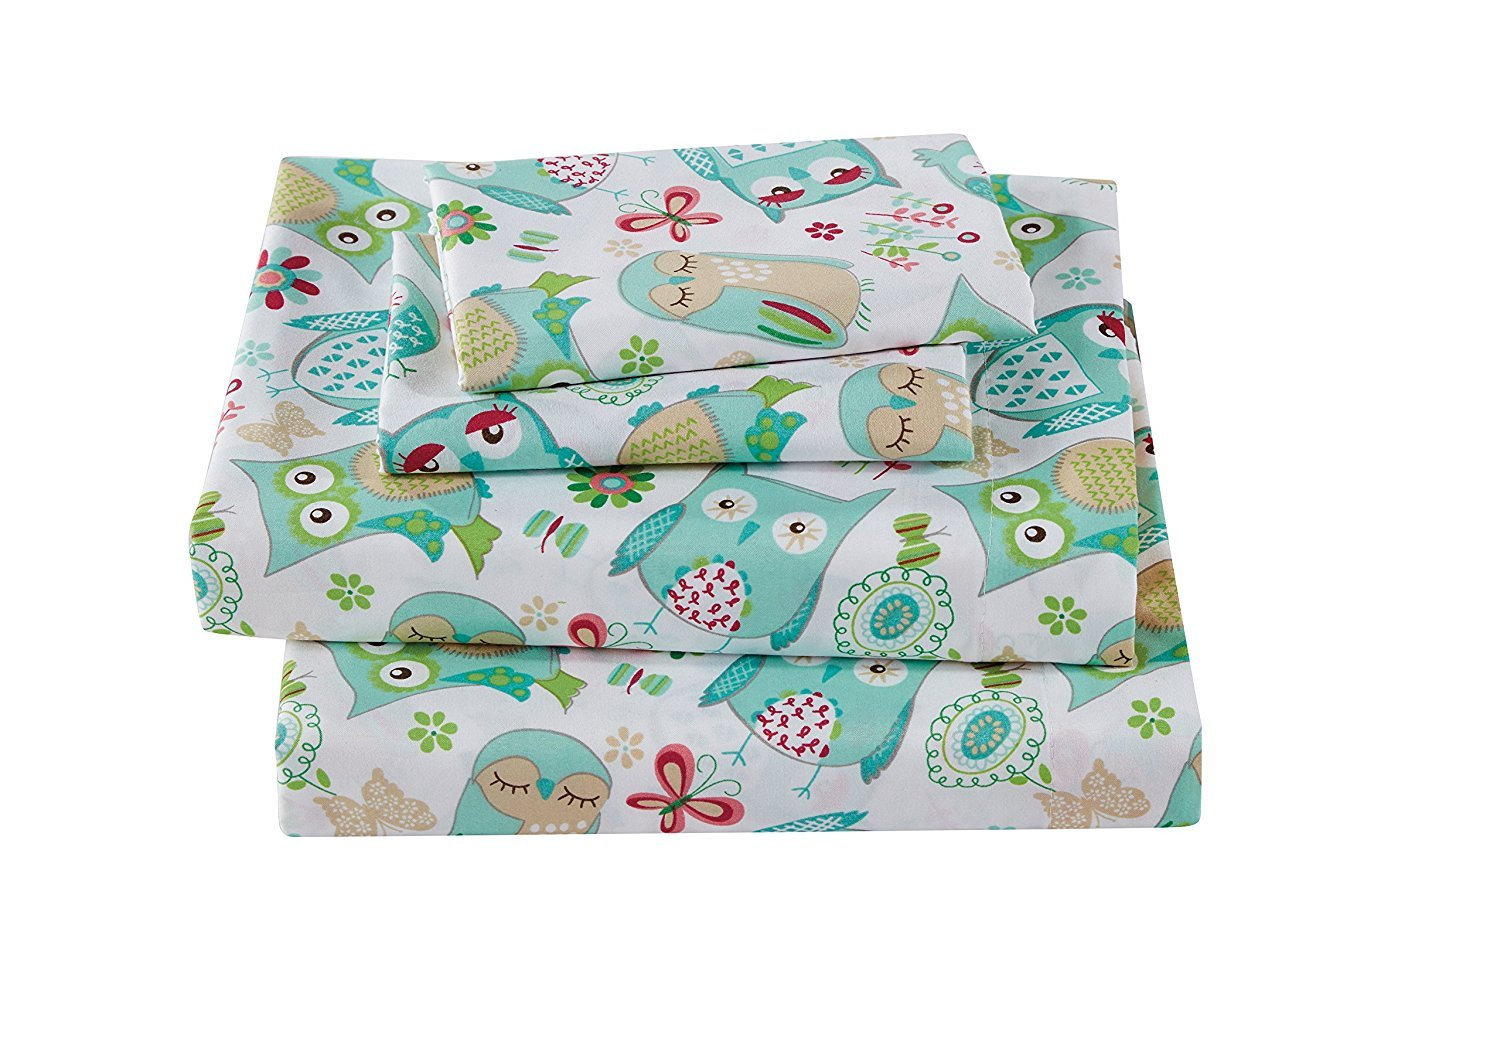 MK Home Mk Collection 4pc Sheet Set Full Size Teens/Girls Owl Teal Green Aqua New